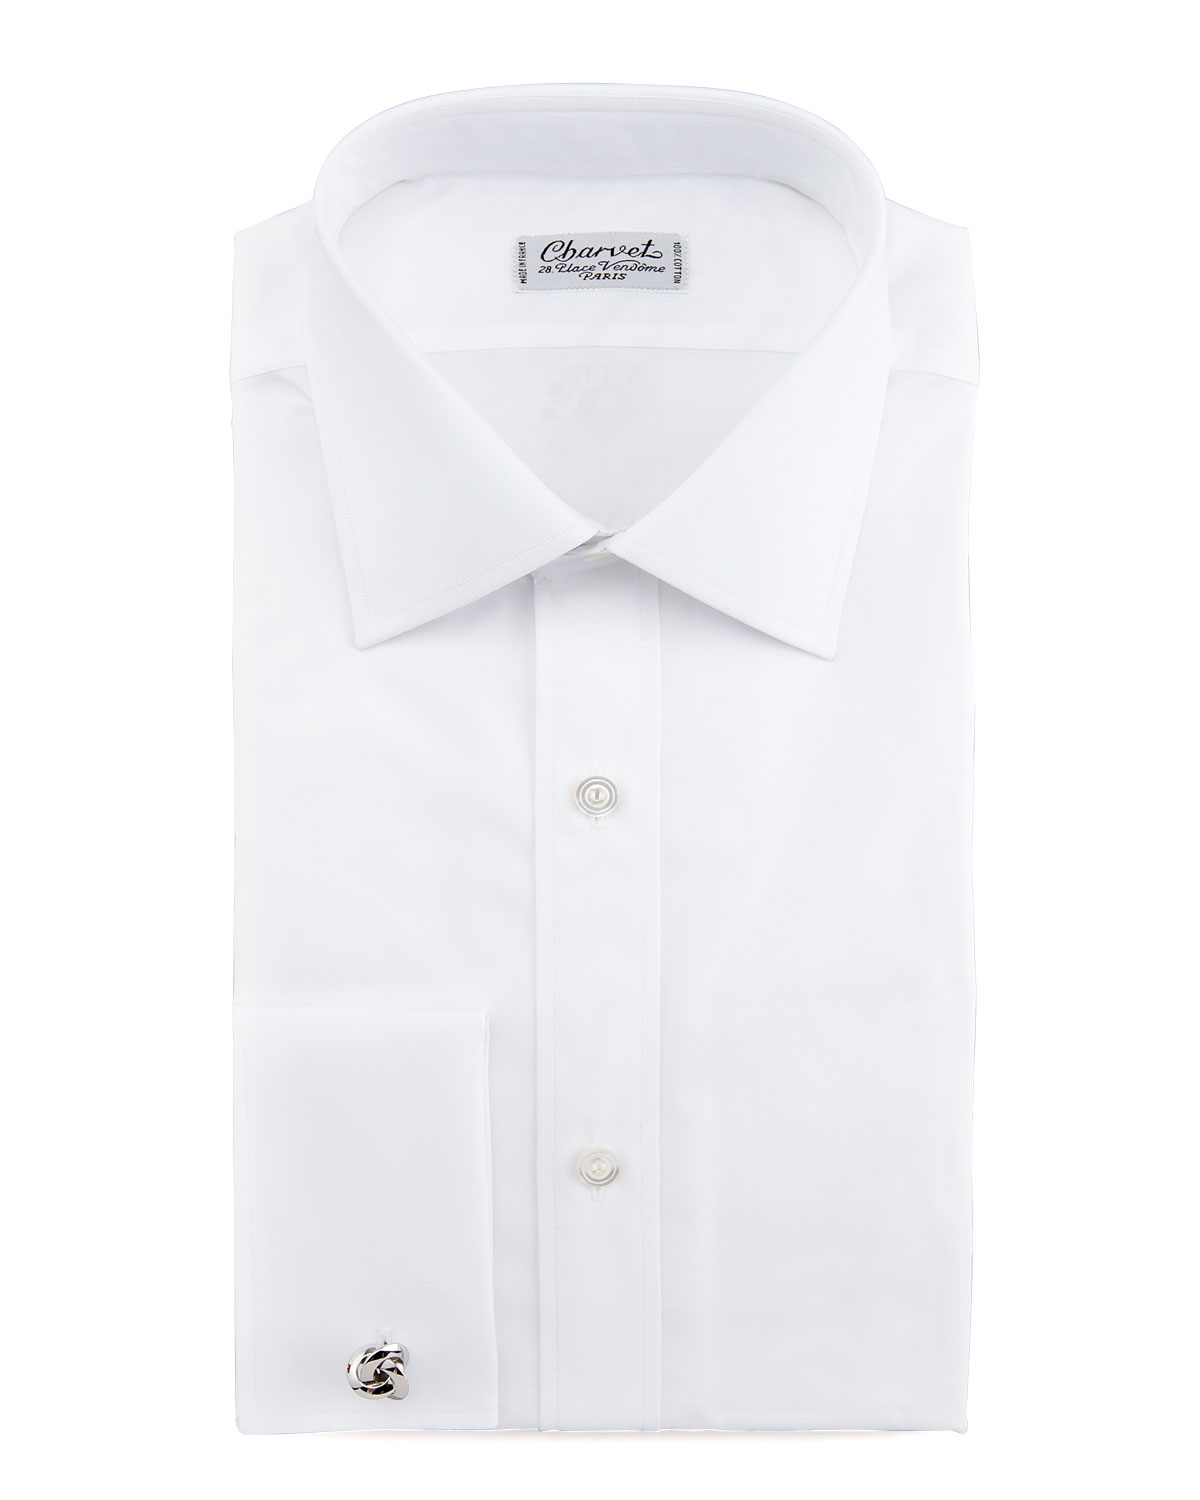 Charvet french cuff dress shirt in white for men lyst for Mens white french cuff shirt